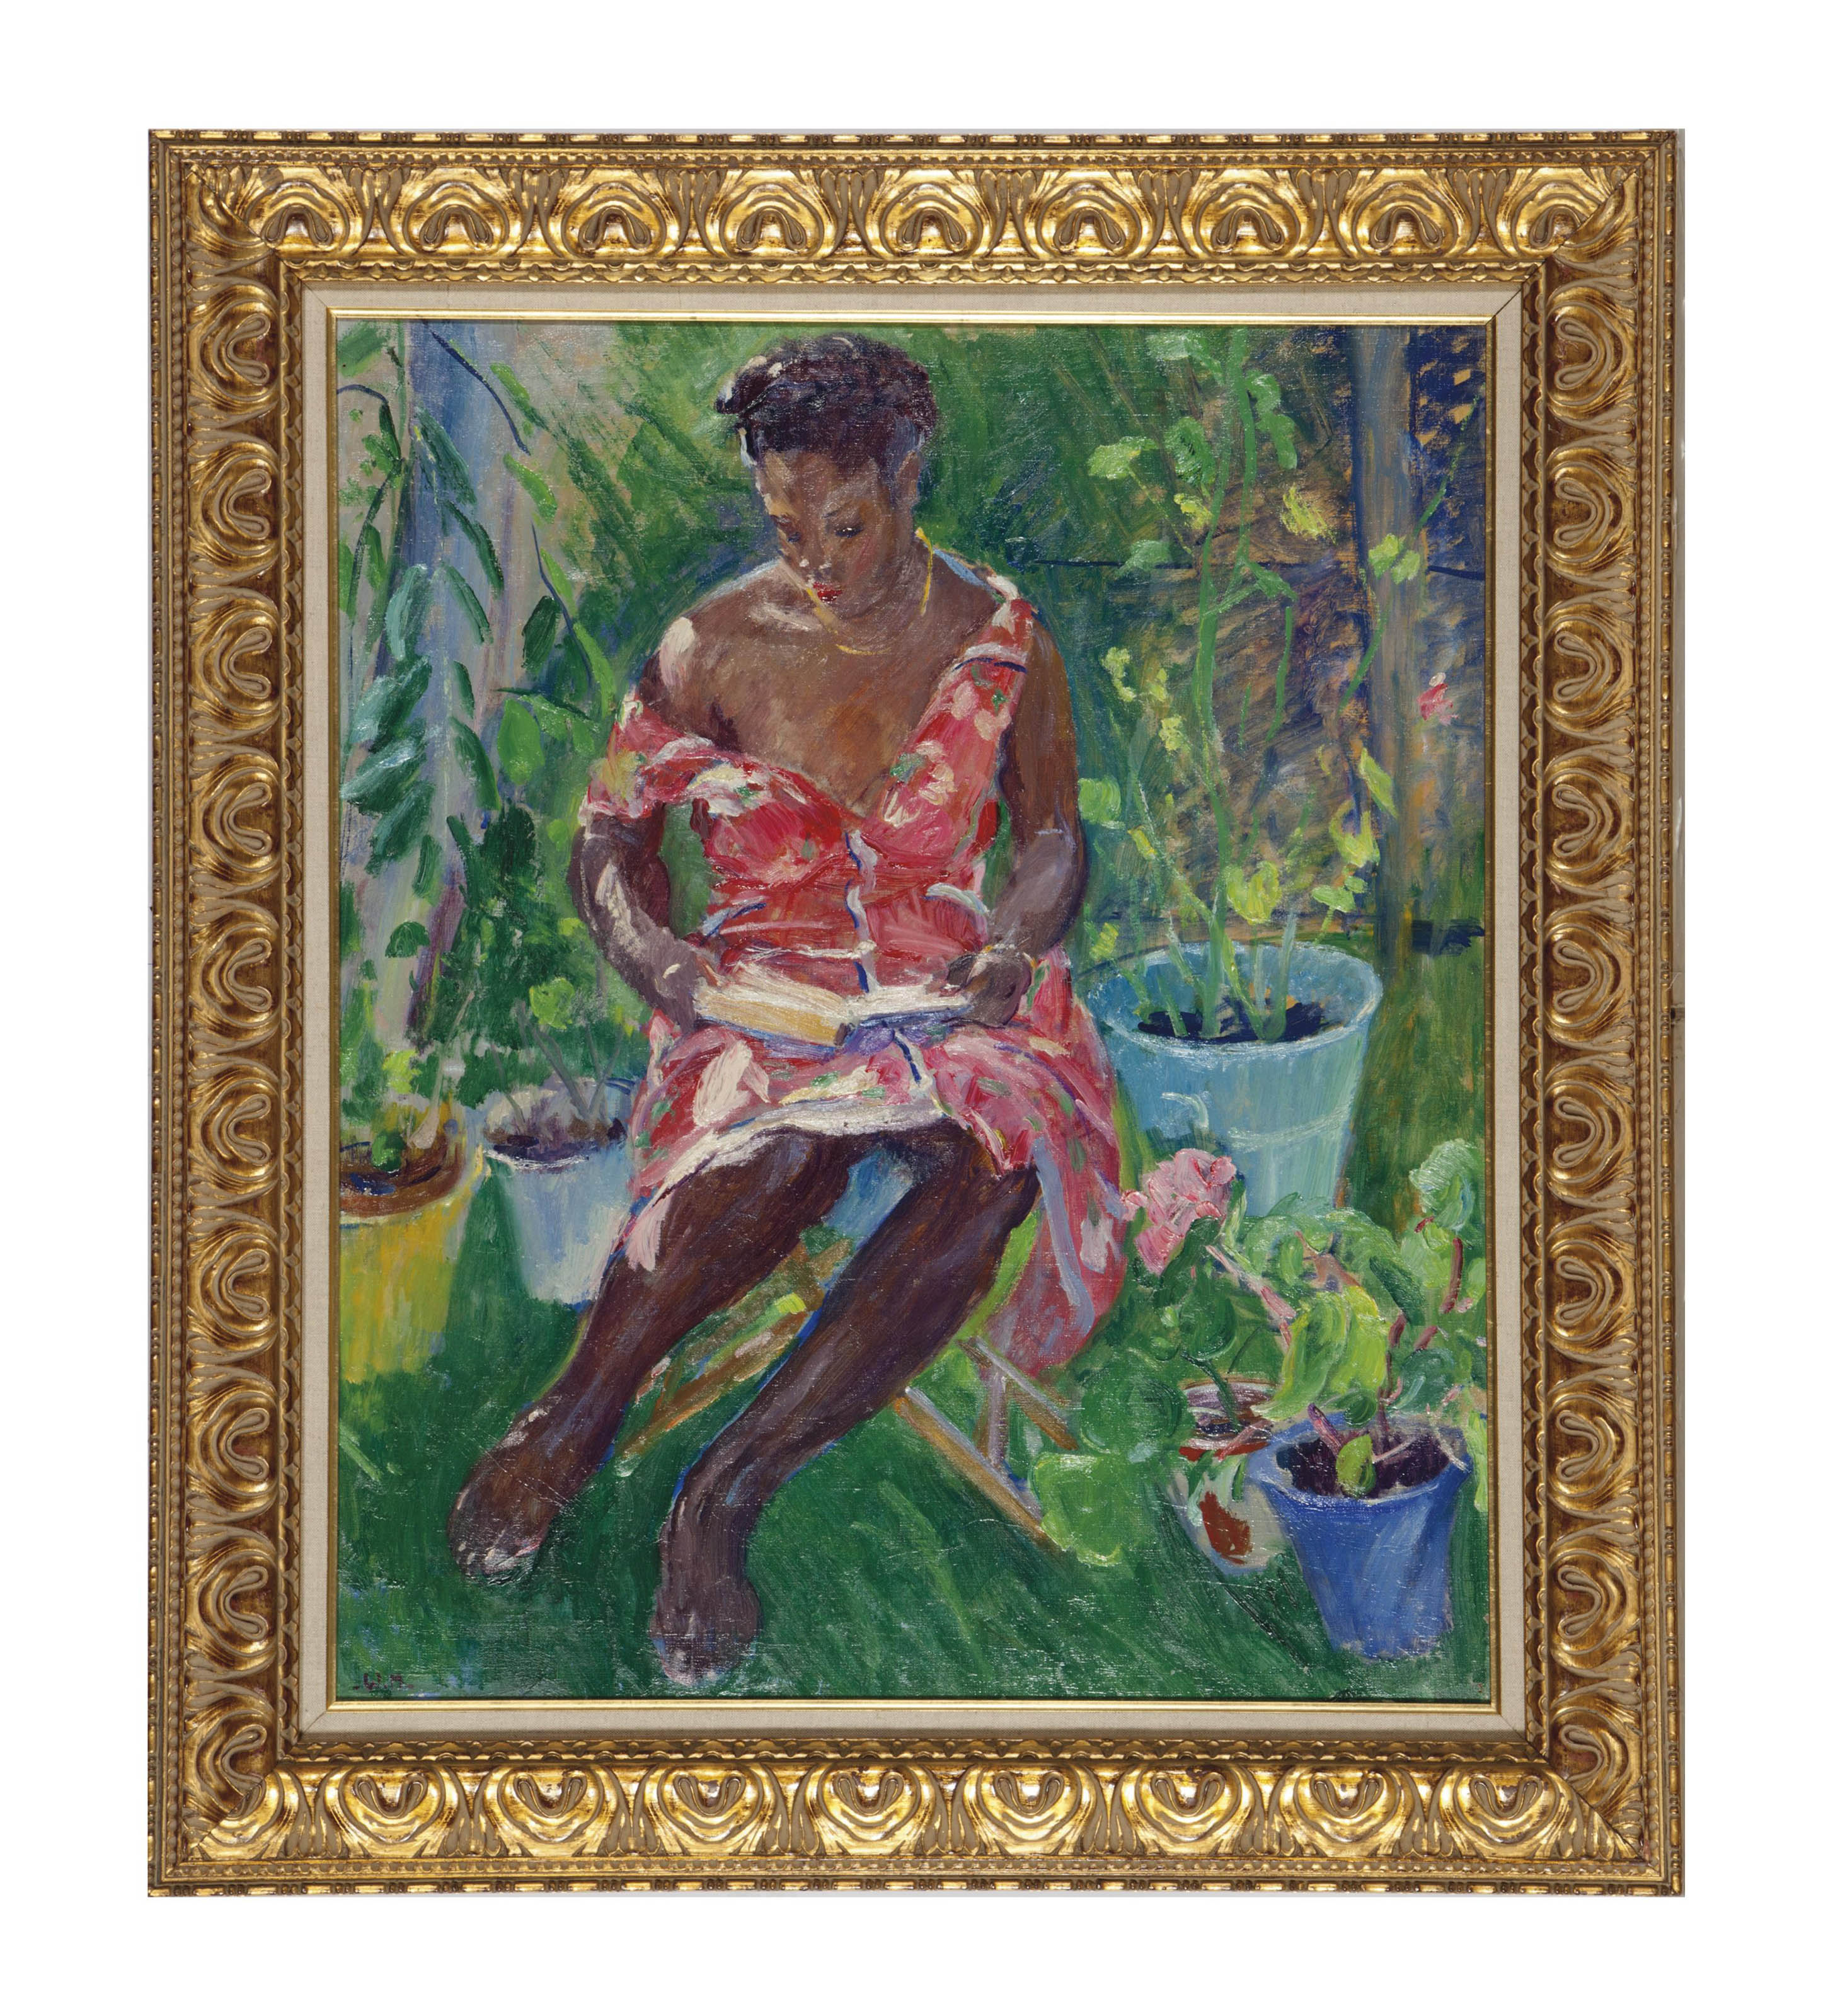 Lady reading in the garden